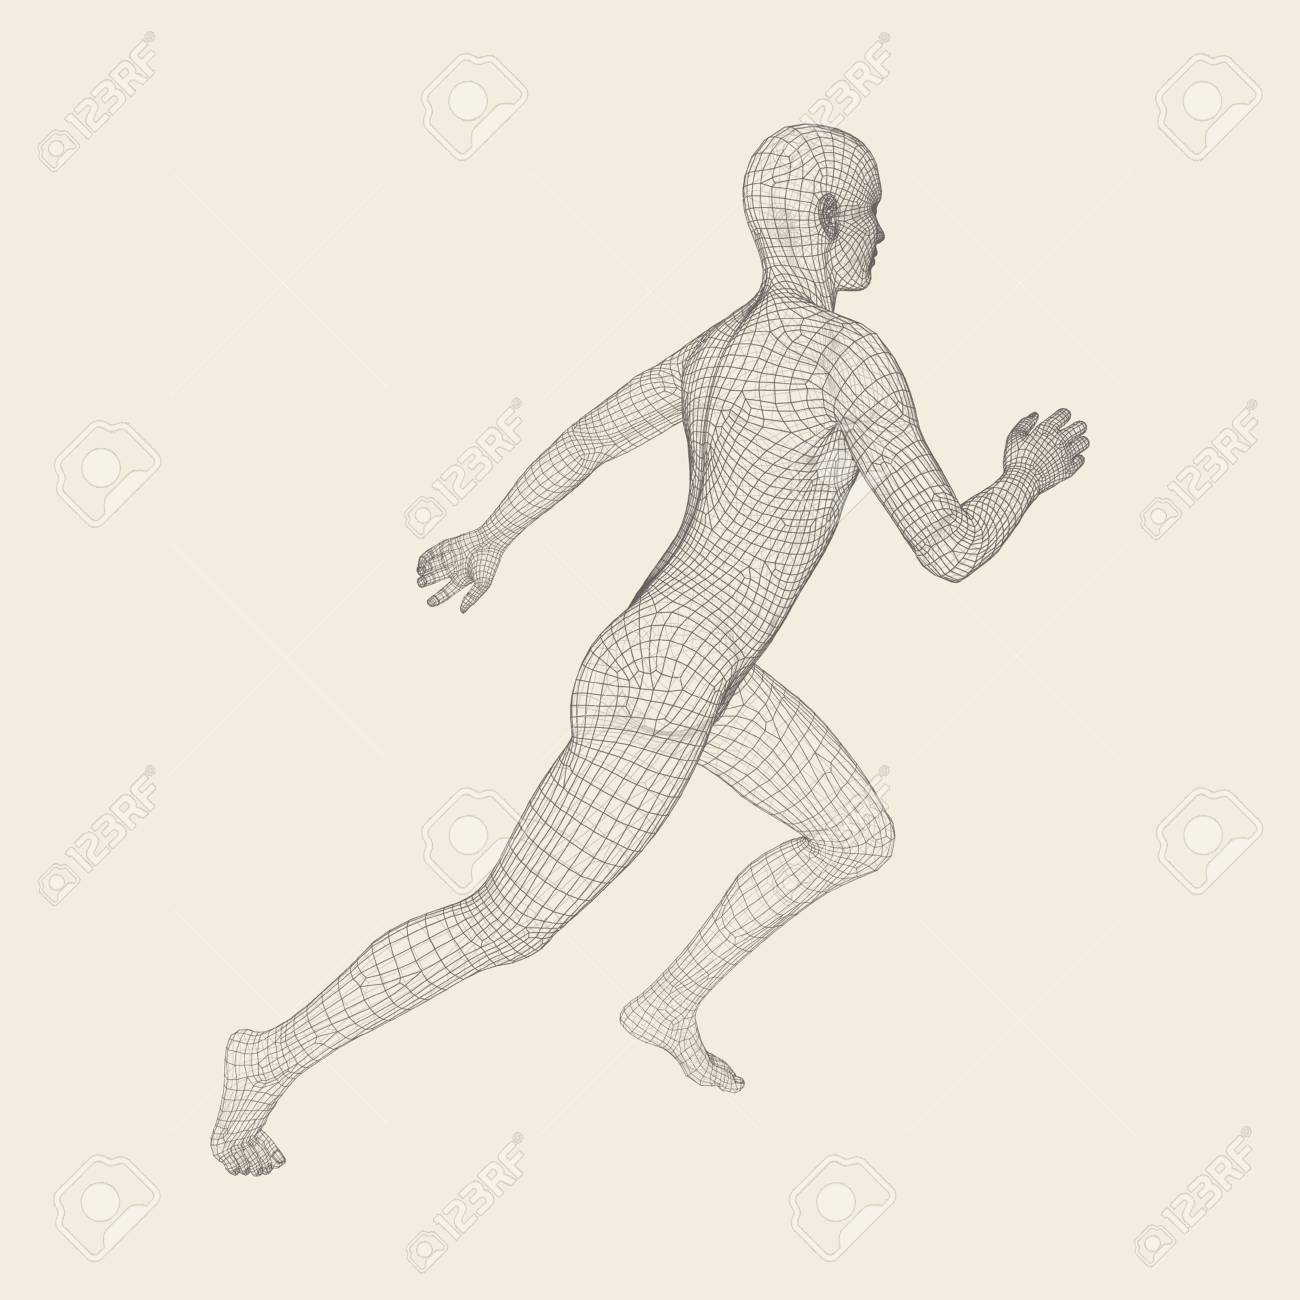 hight resolution of 3d running man human body wire model sport symbol low poly man